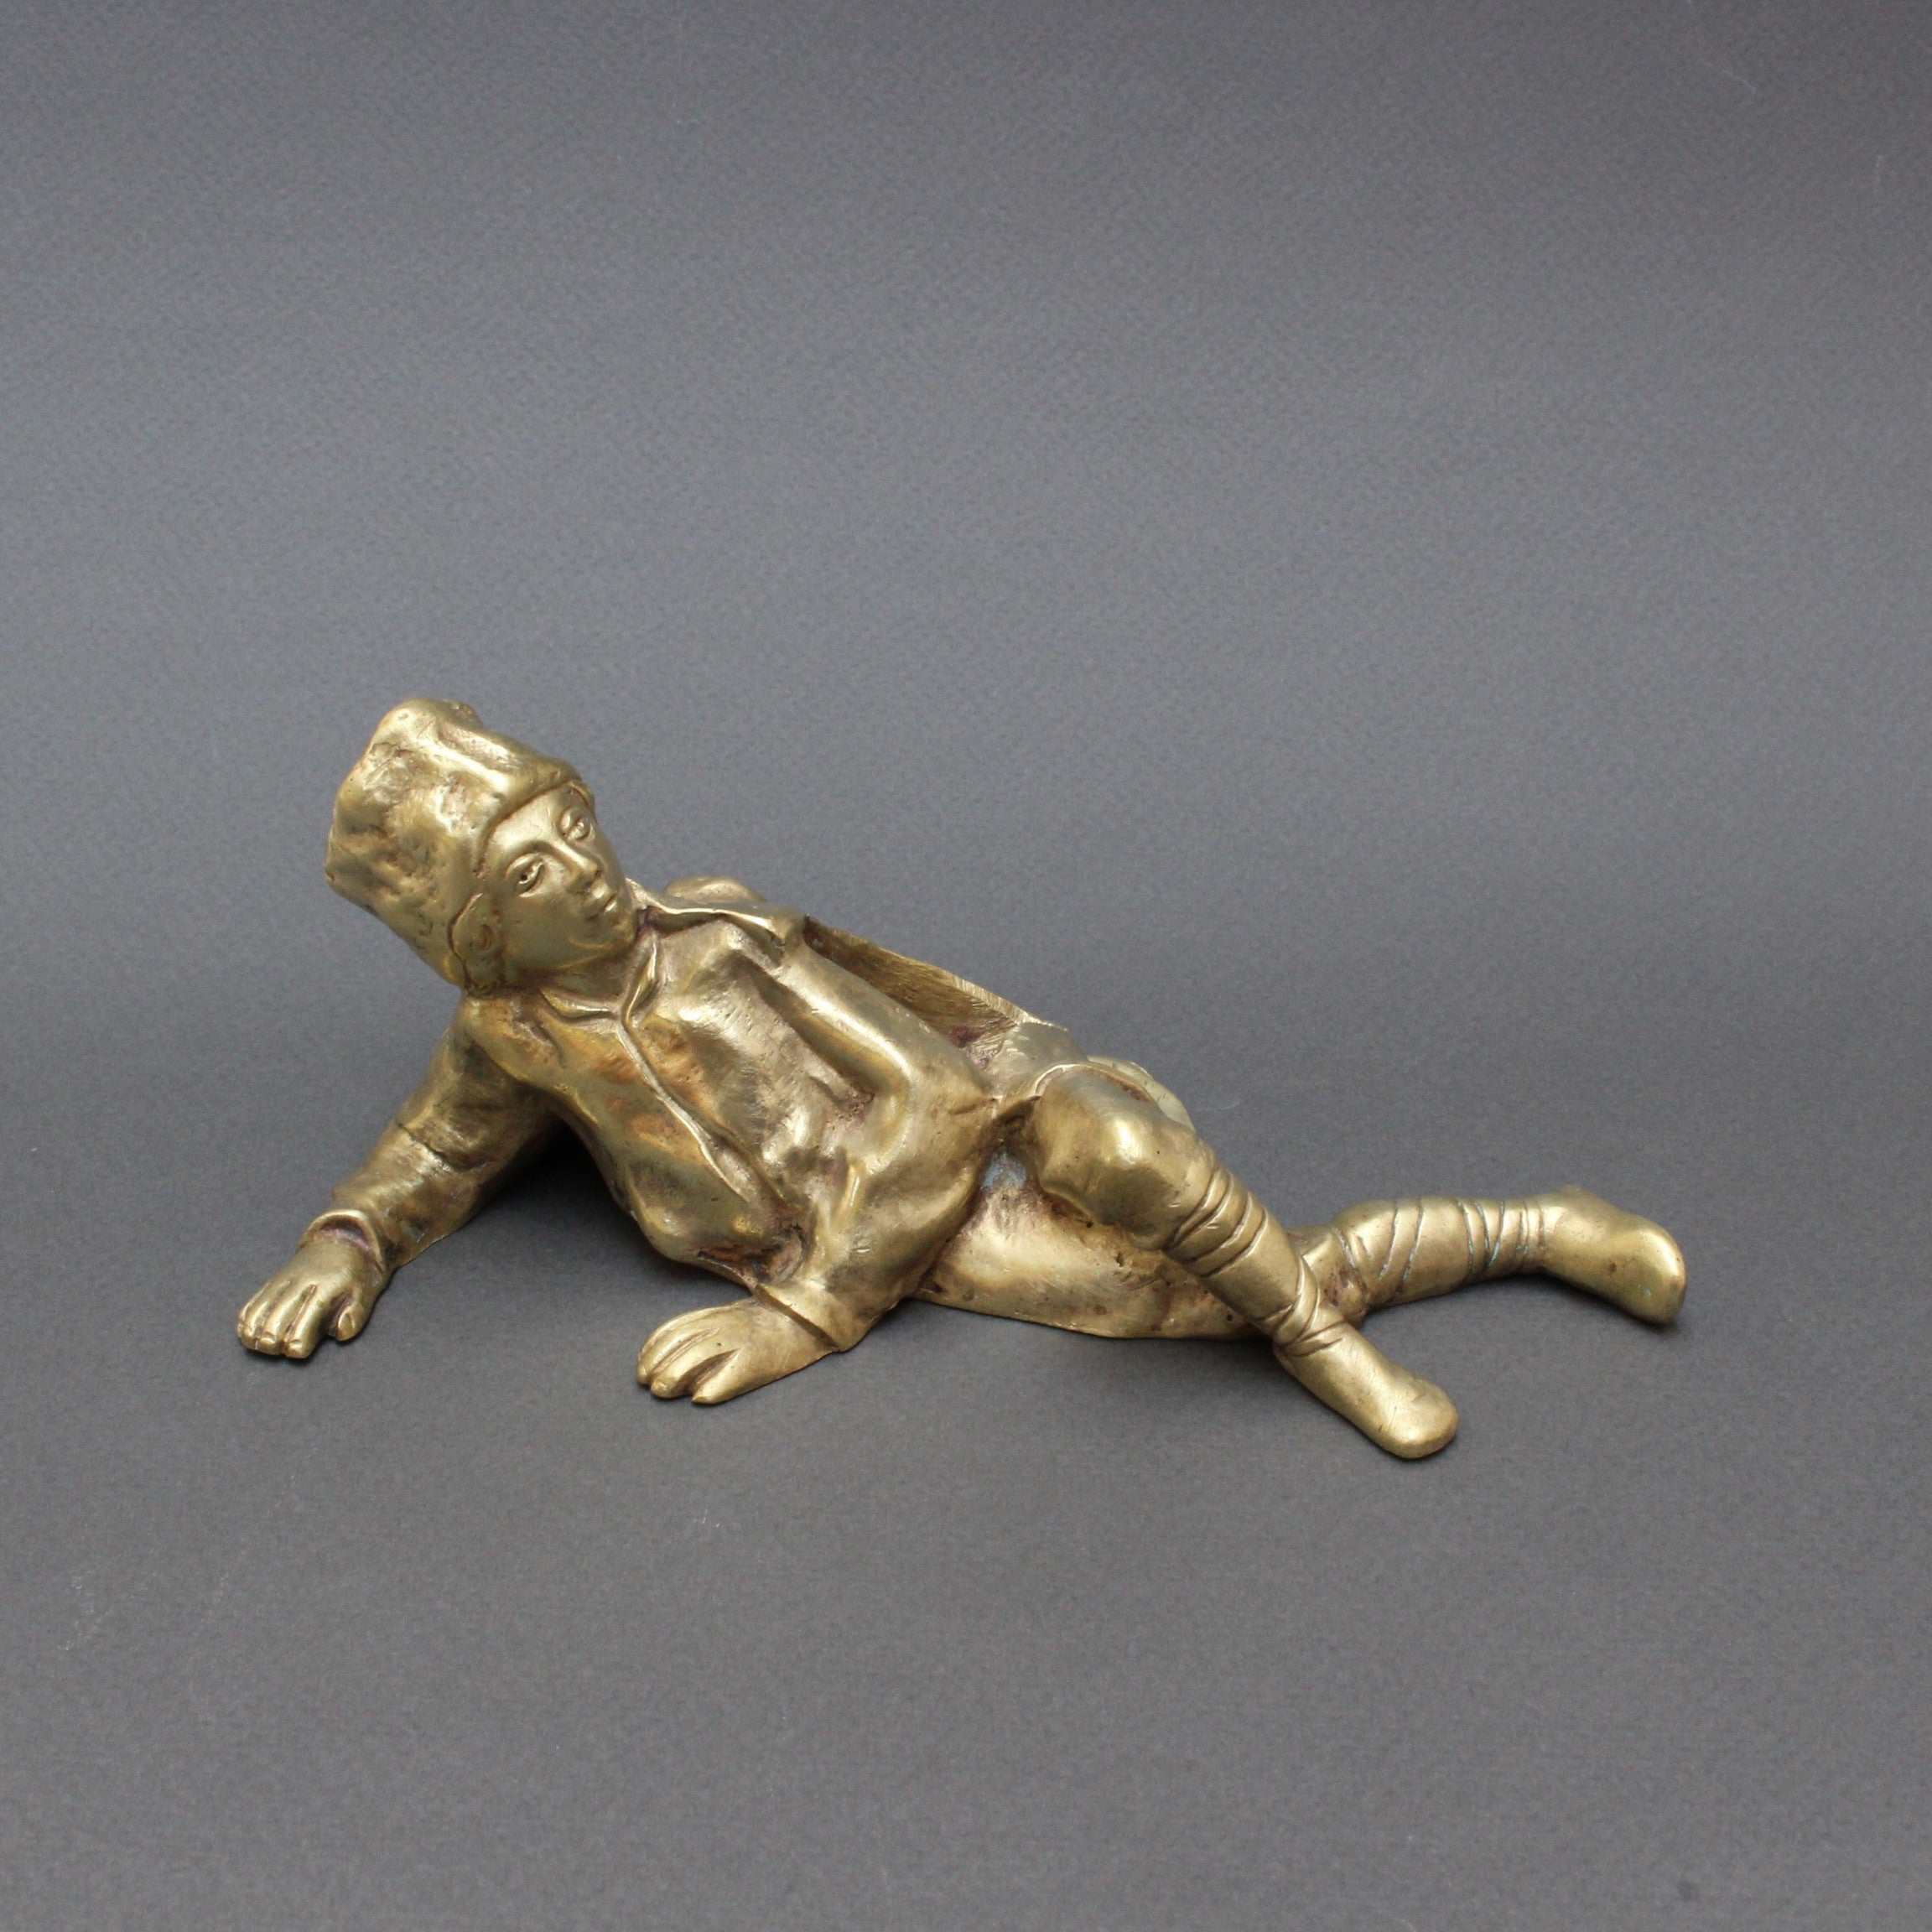 Italian Vintage Brass Desk Paperweight of Reclining Boy Soldier